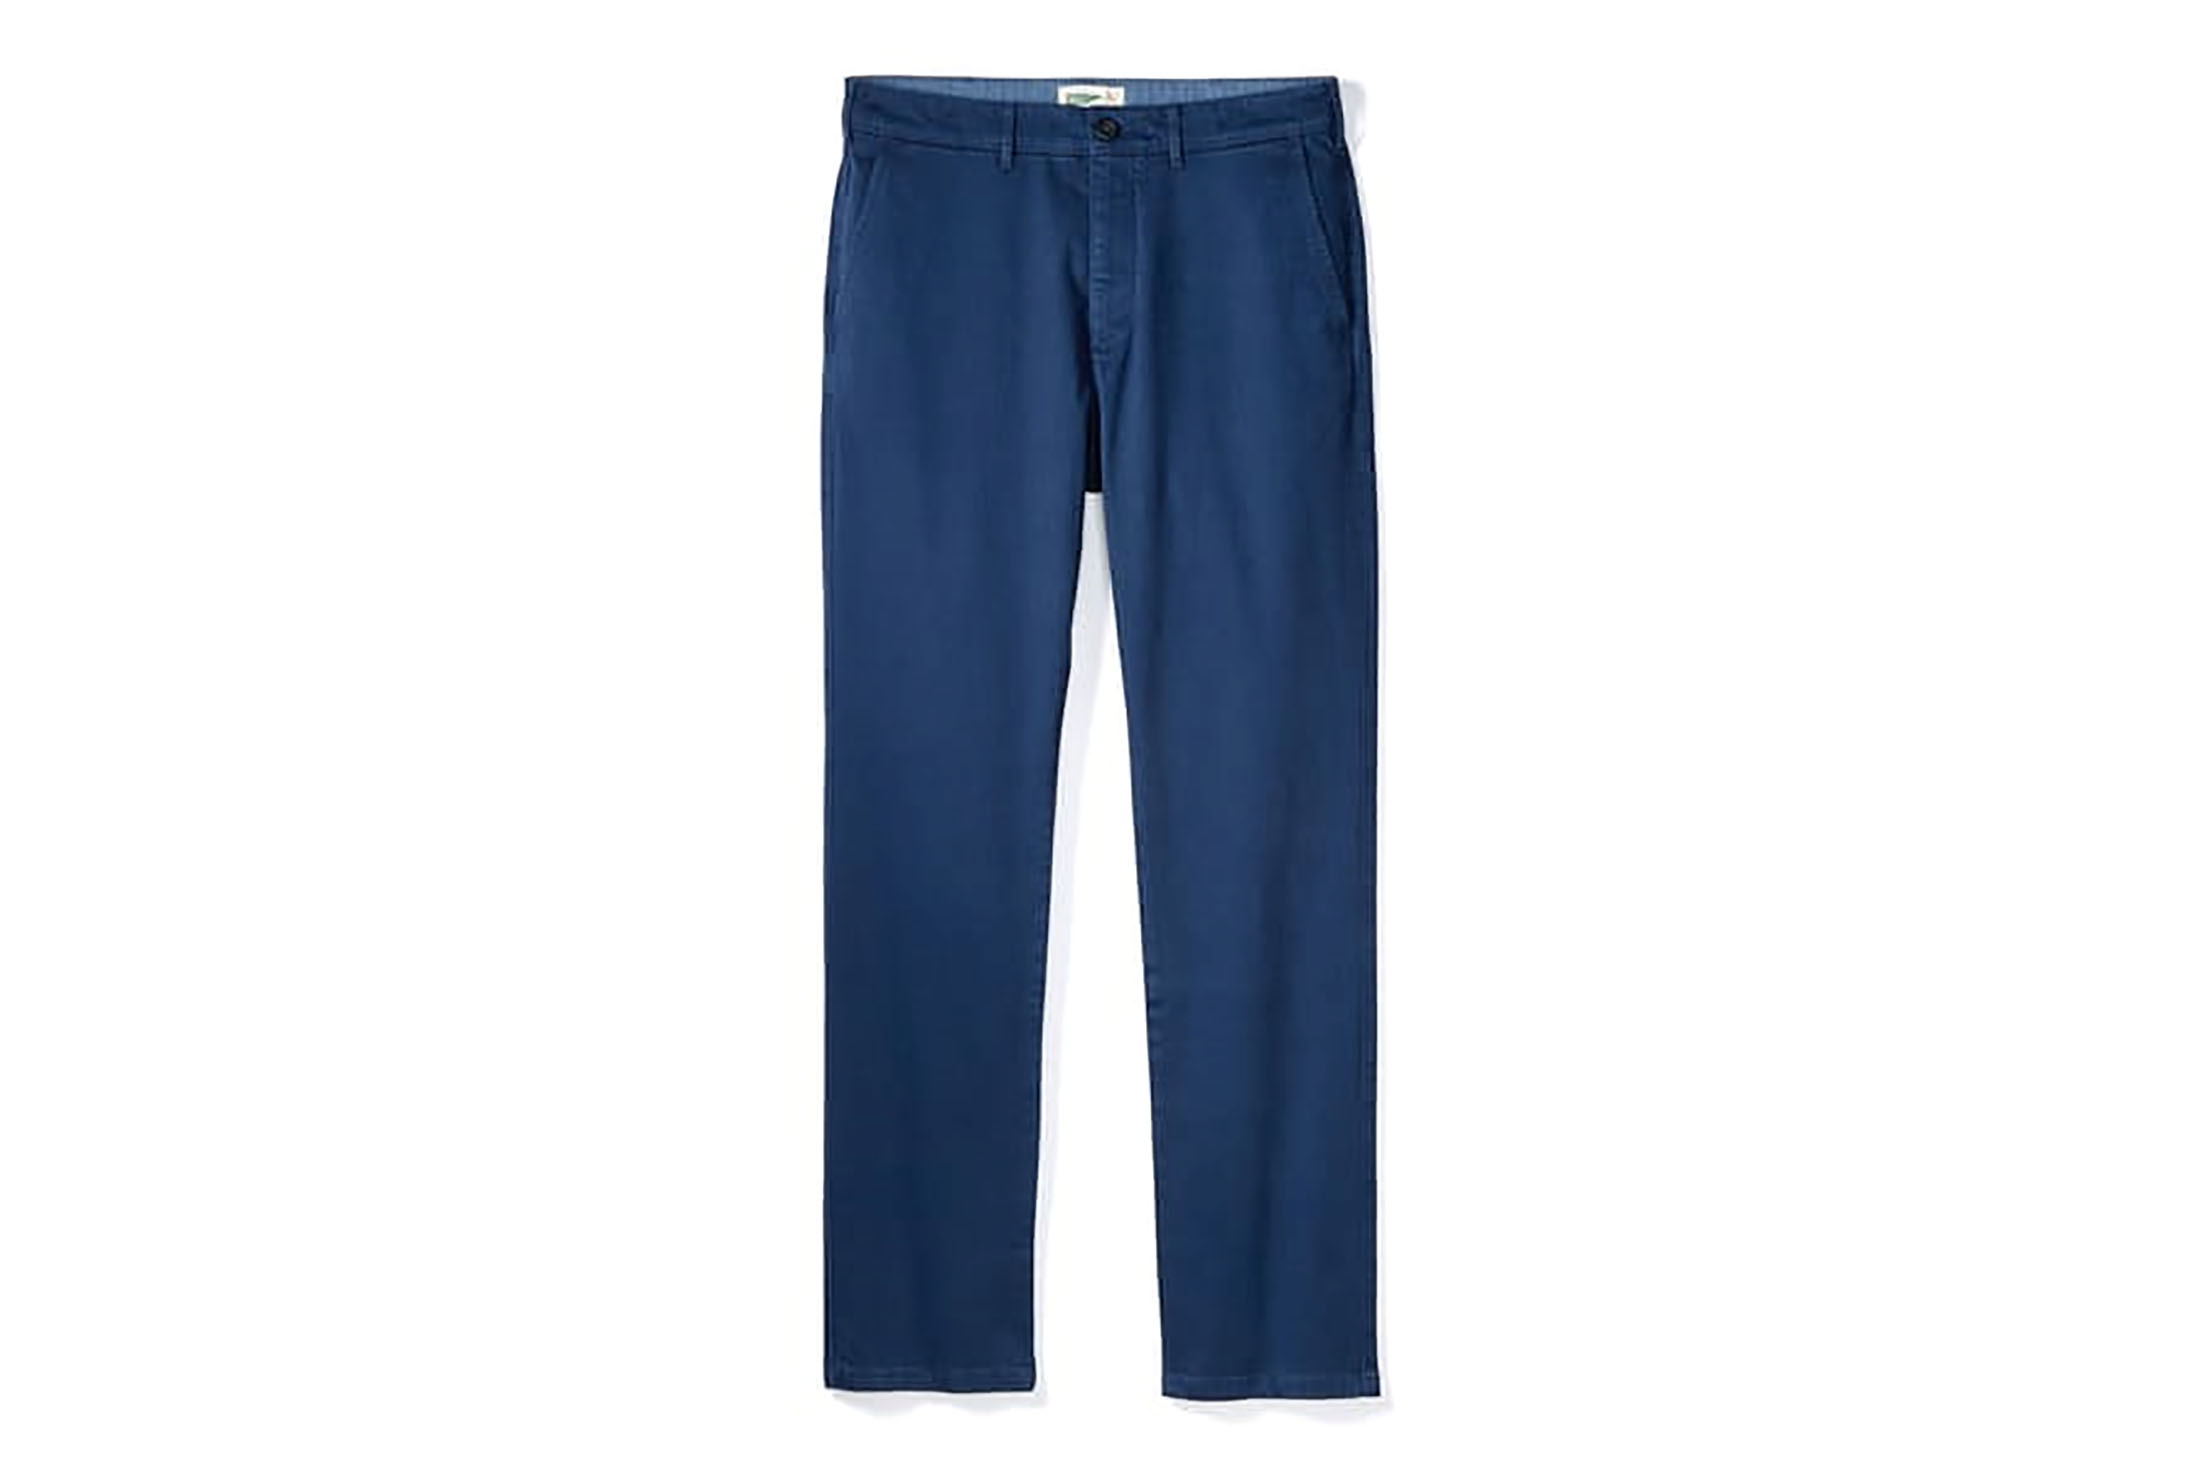 Blue chinos on white background